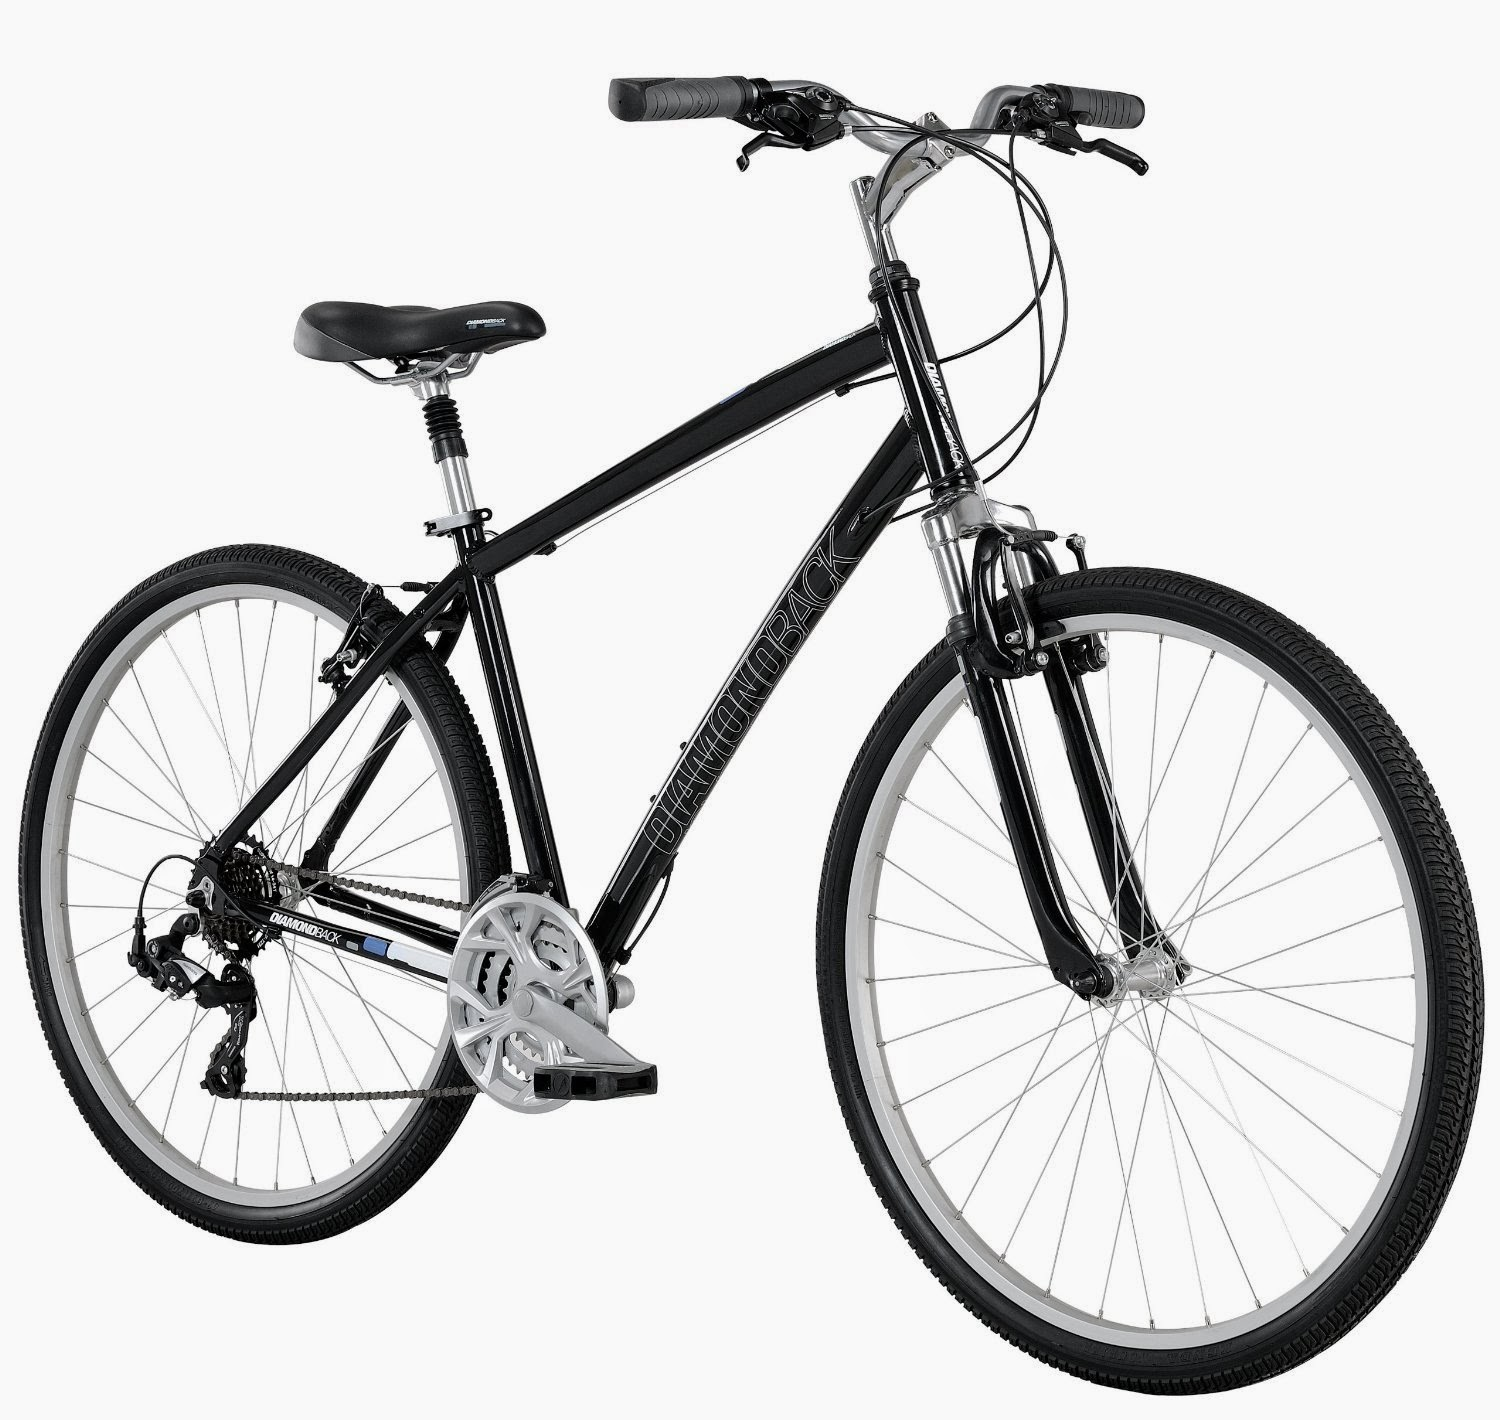 Diamondback Bicycles 2014 Edgewood Men's Sport Hybrid Bike, review, relaxed upright feel of a comfort bike combined with efficiency of a road bike with 700c wheels